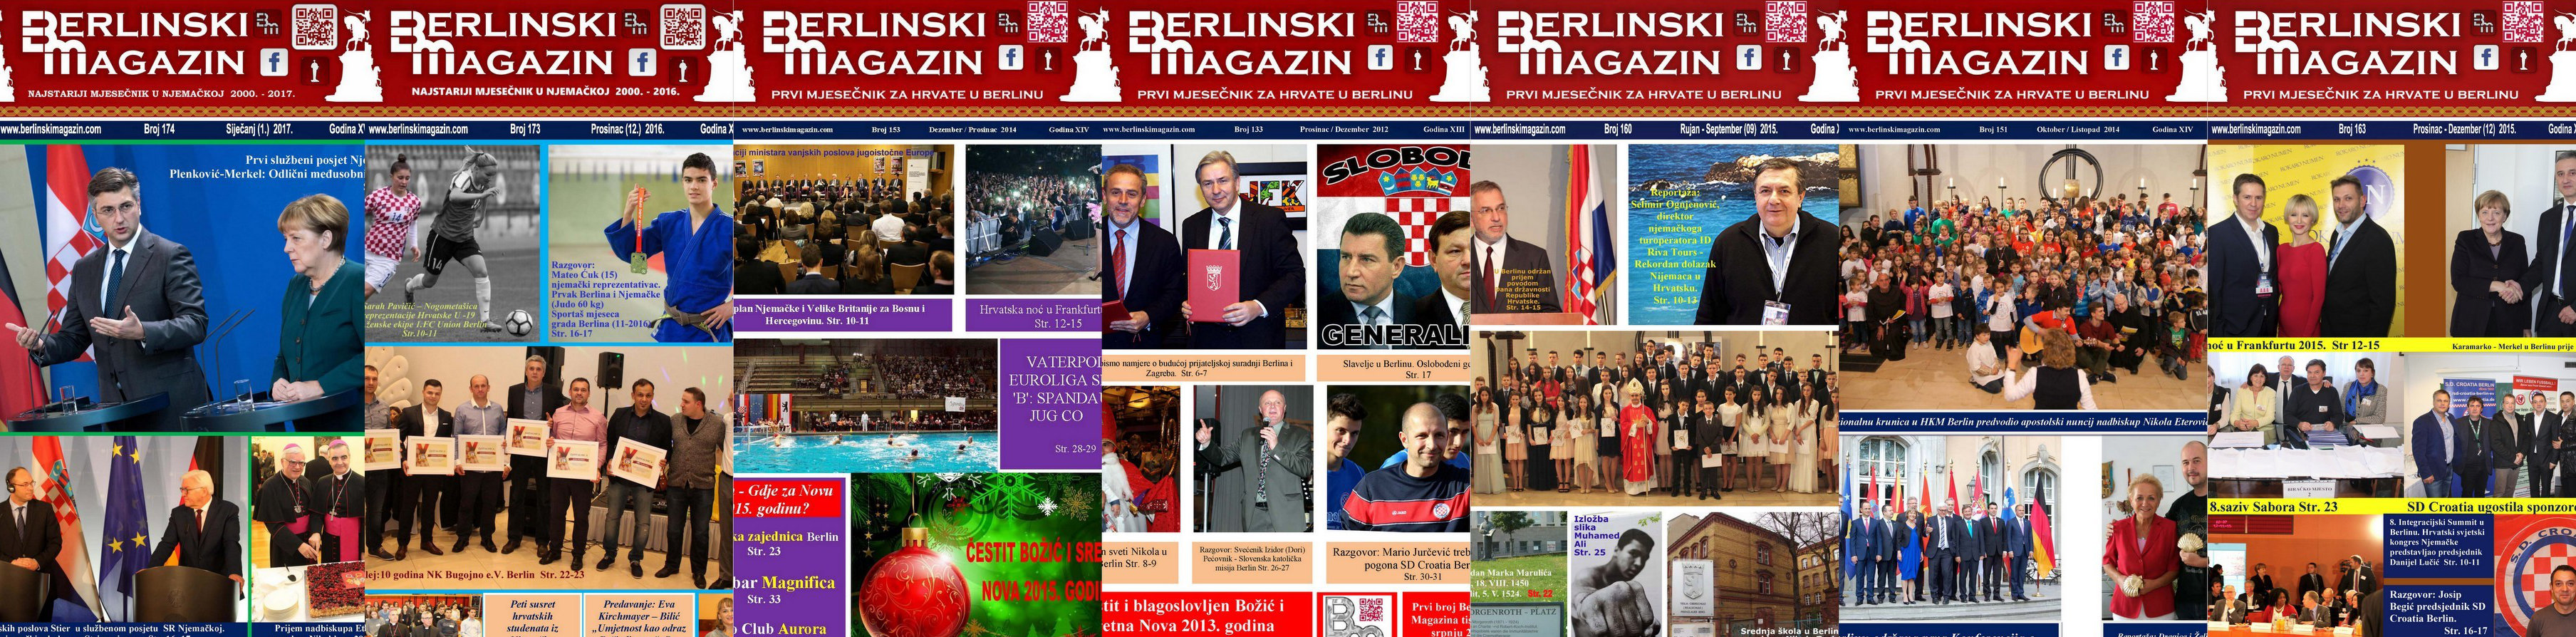 Berlinski Magazin